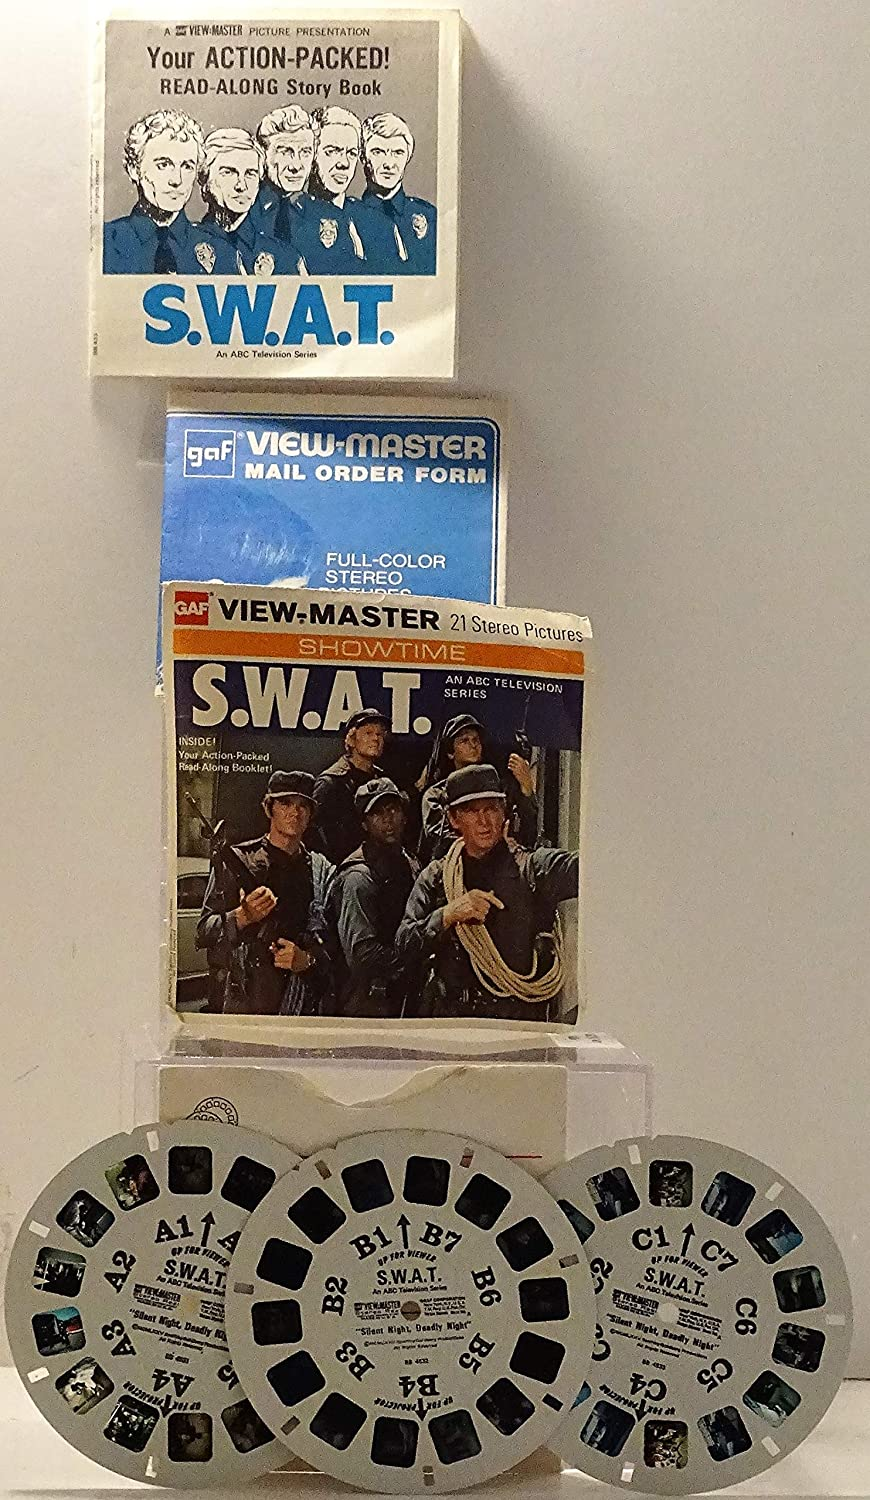 Classic ViewMaster - Showtime S.W.A.T. ABC Seri Surprise price Television an Selling rankings